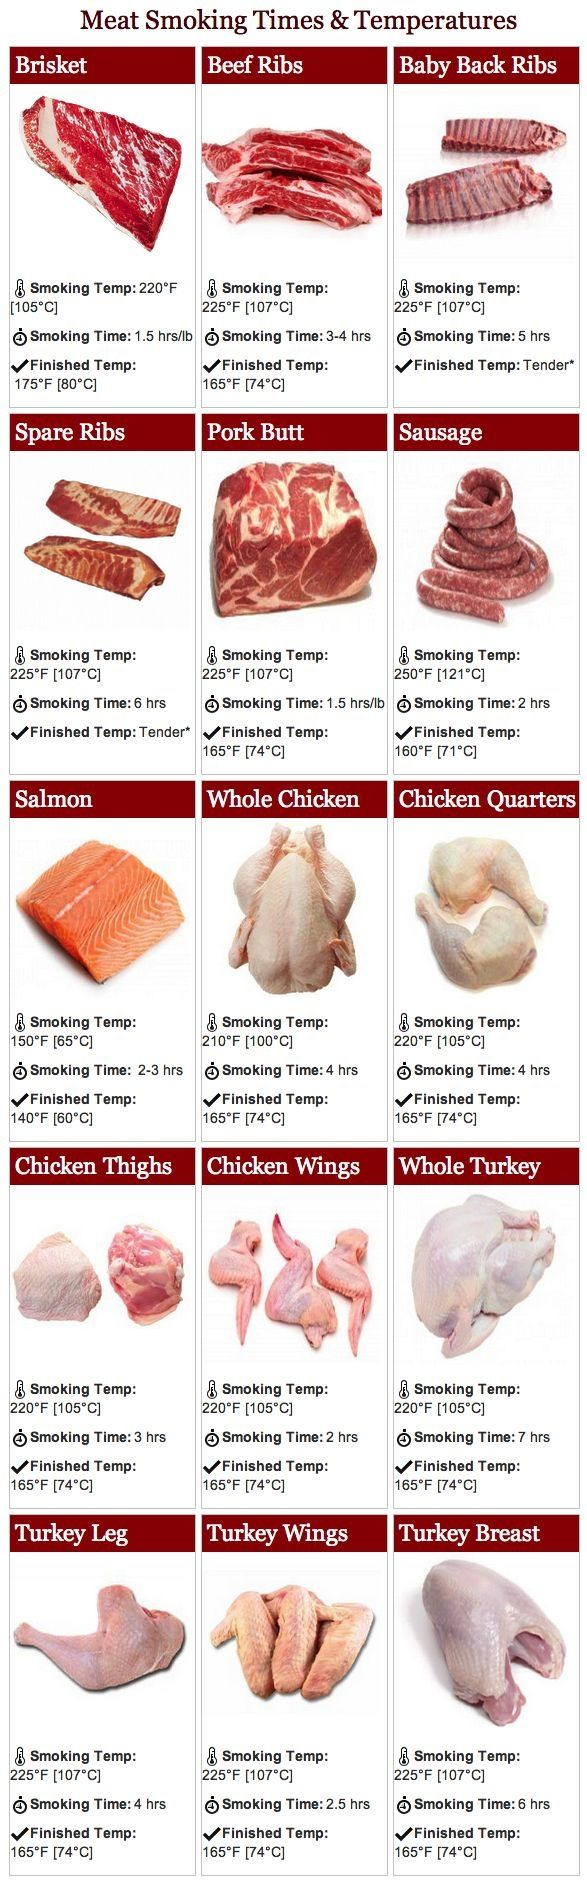 Cheat sheet on meat smoking times and temperatures from Bradley Smoker! by…